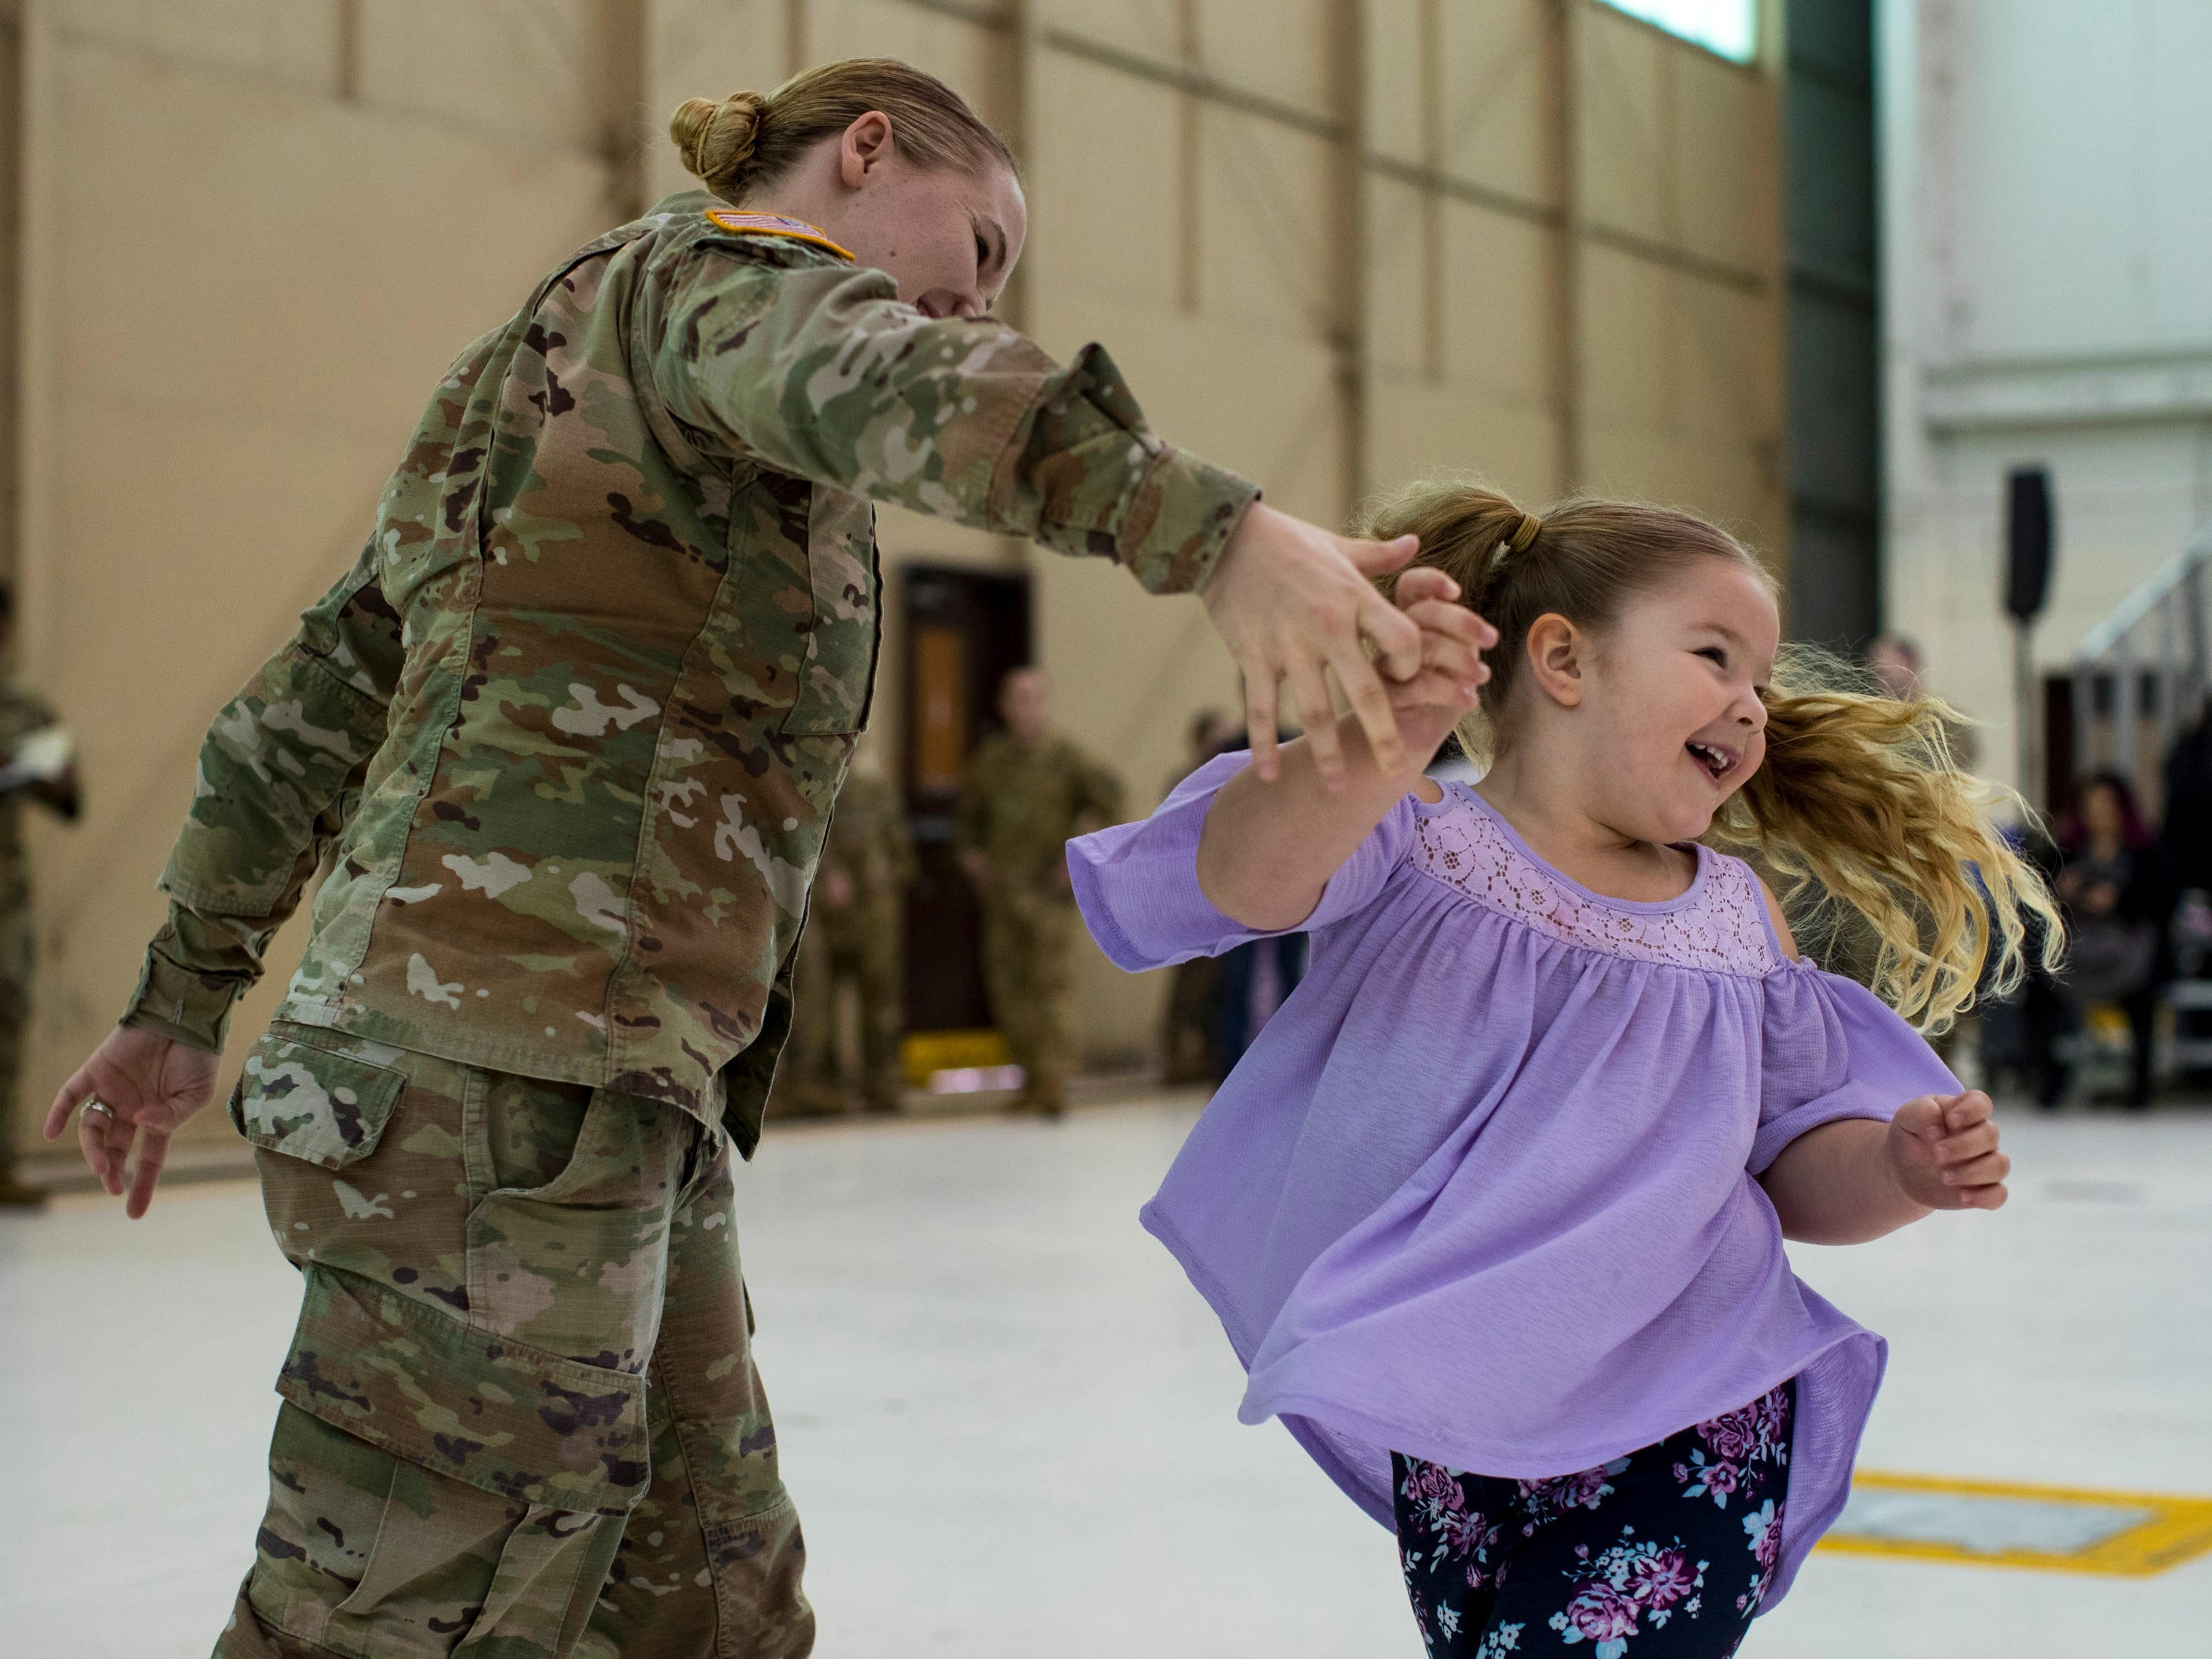 Dylann Letzelter, 4, dances as Sgt. Megan Campbell spins her around during the welcome home ceremony for members of the 101st Combat Aviation Brigade at Fort Campbell in Clarksville on Tuesday, Feb. 5, 2019. The soldiers were returning from a nine-month deployment to Afghanistan.